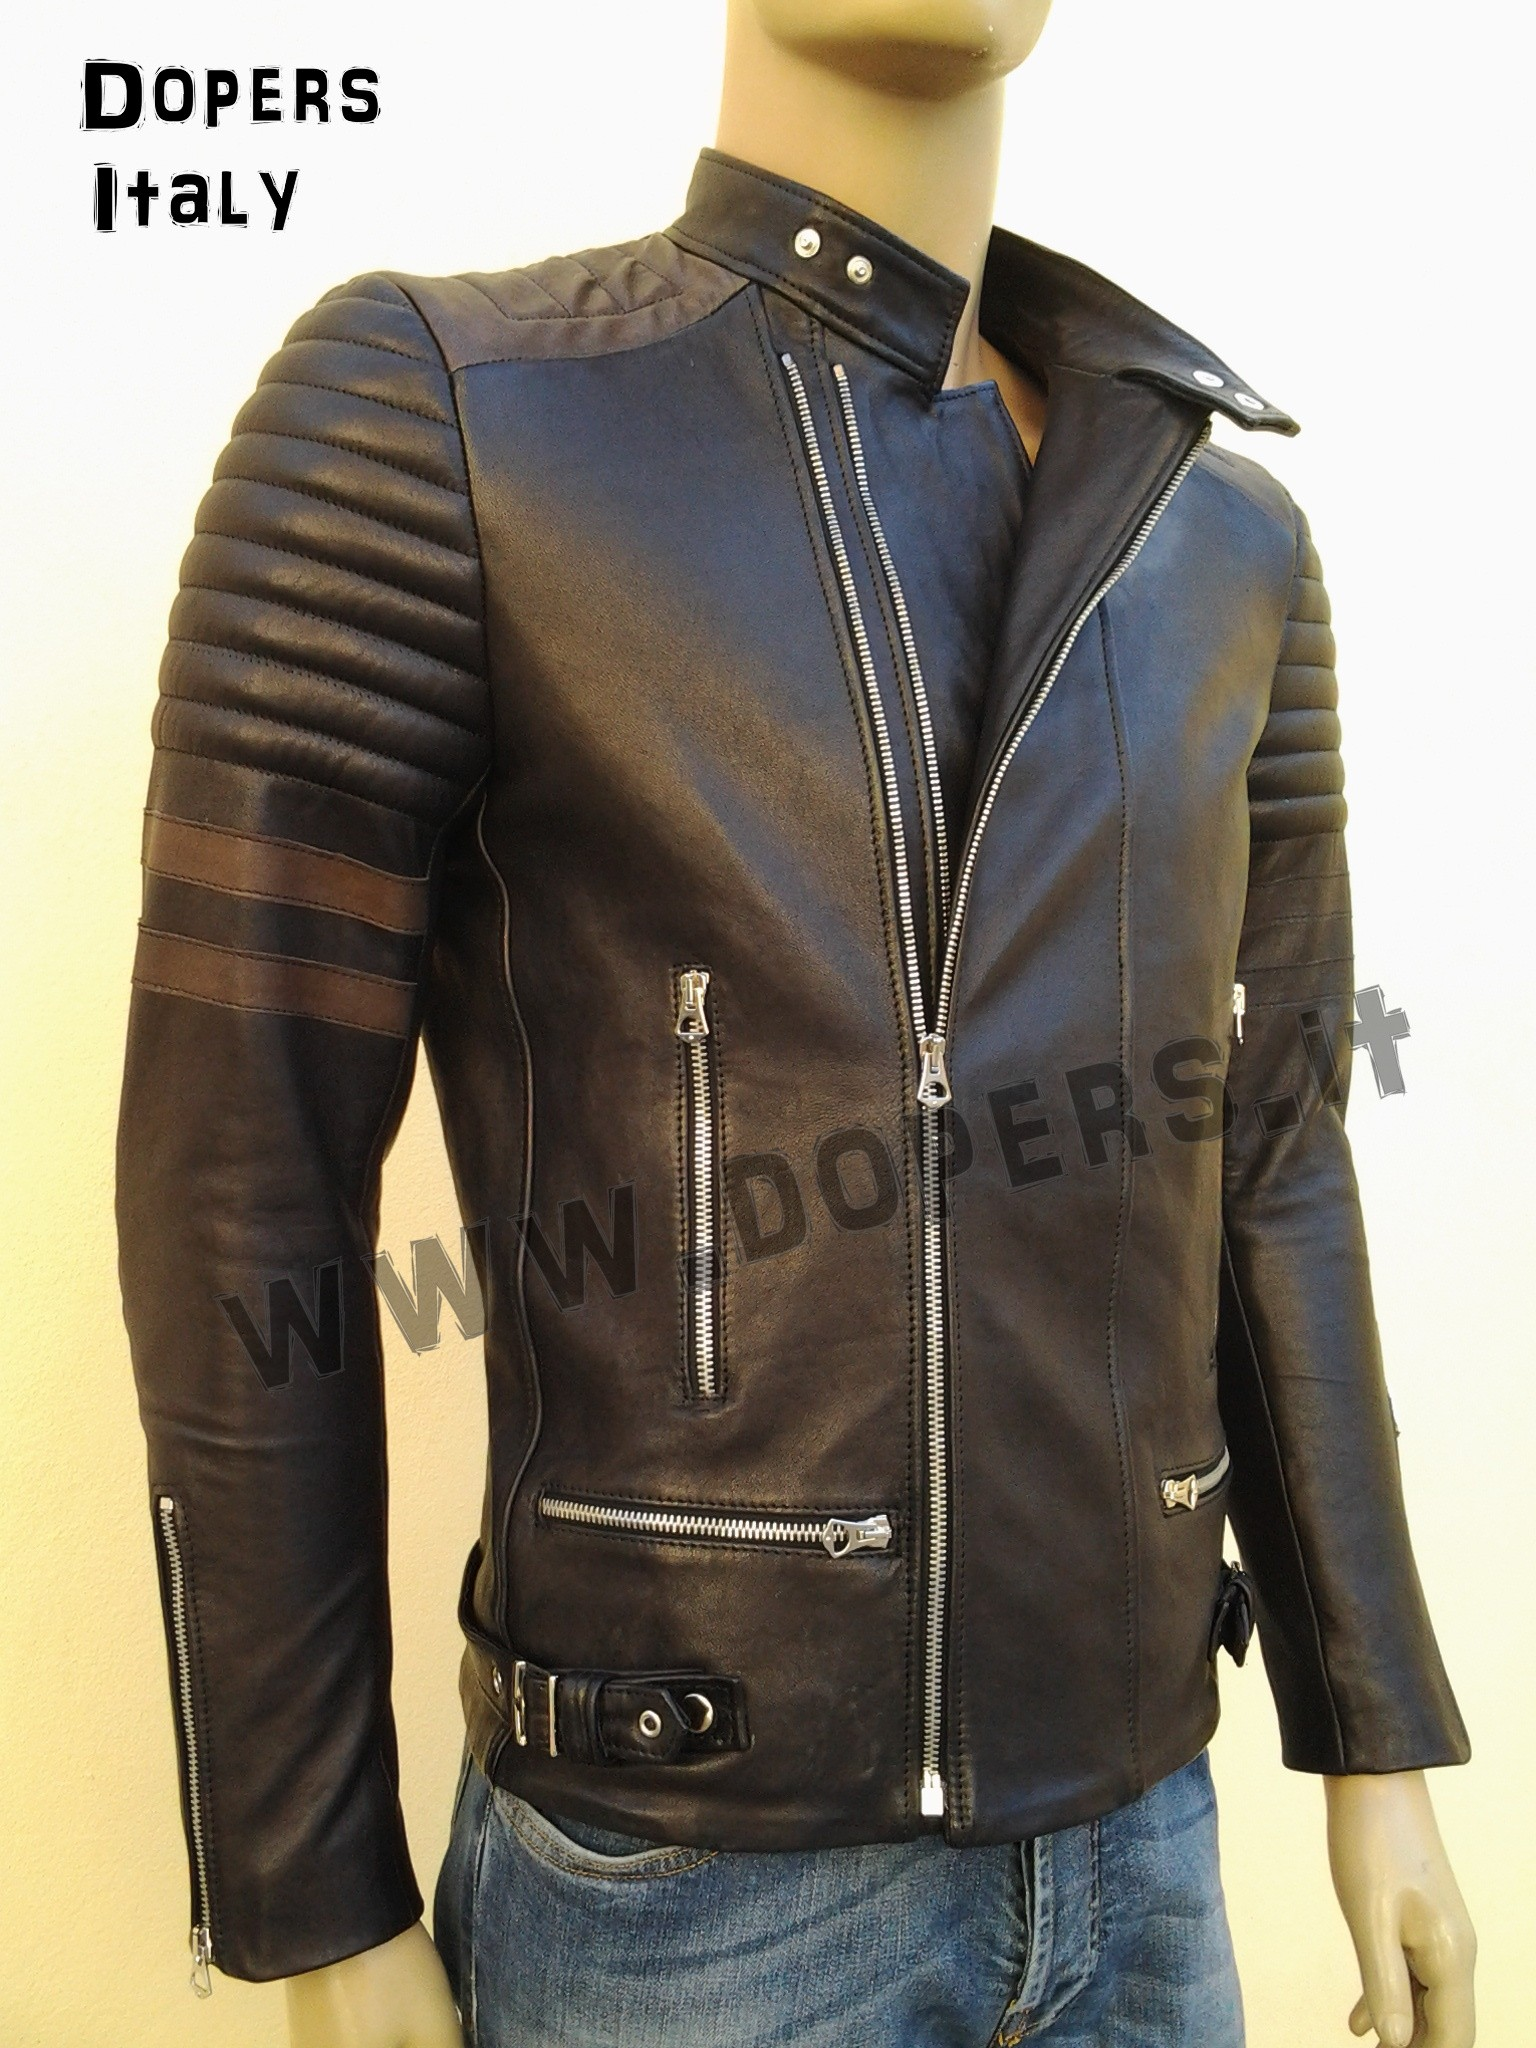 best website 4ec1e 2c3c2 Leather jacket for men model Kim Raider - DoperS Fashion Made in Italy